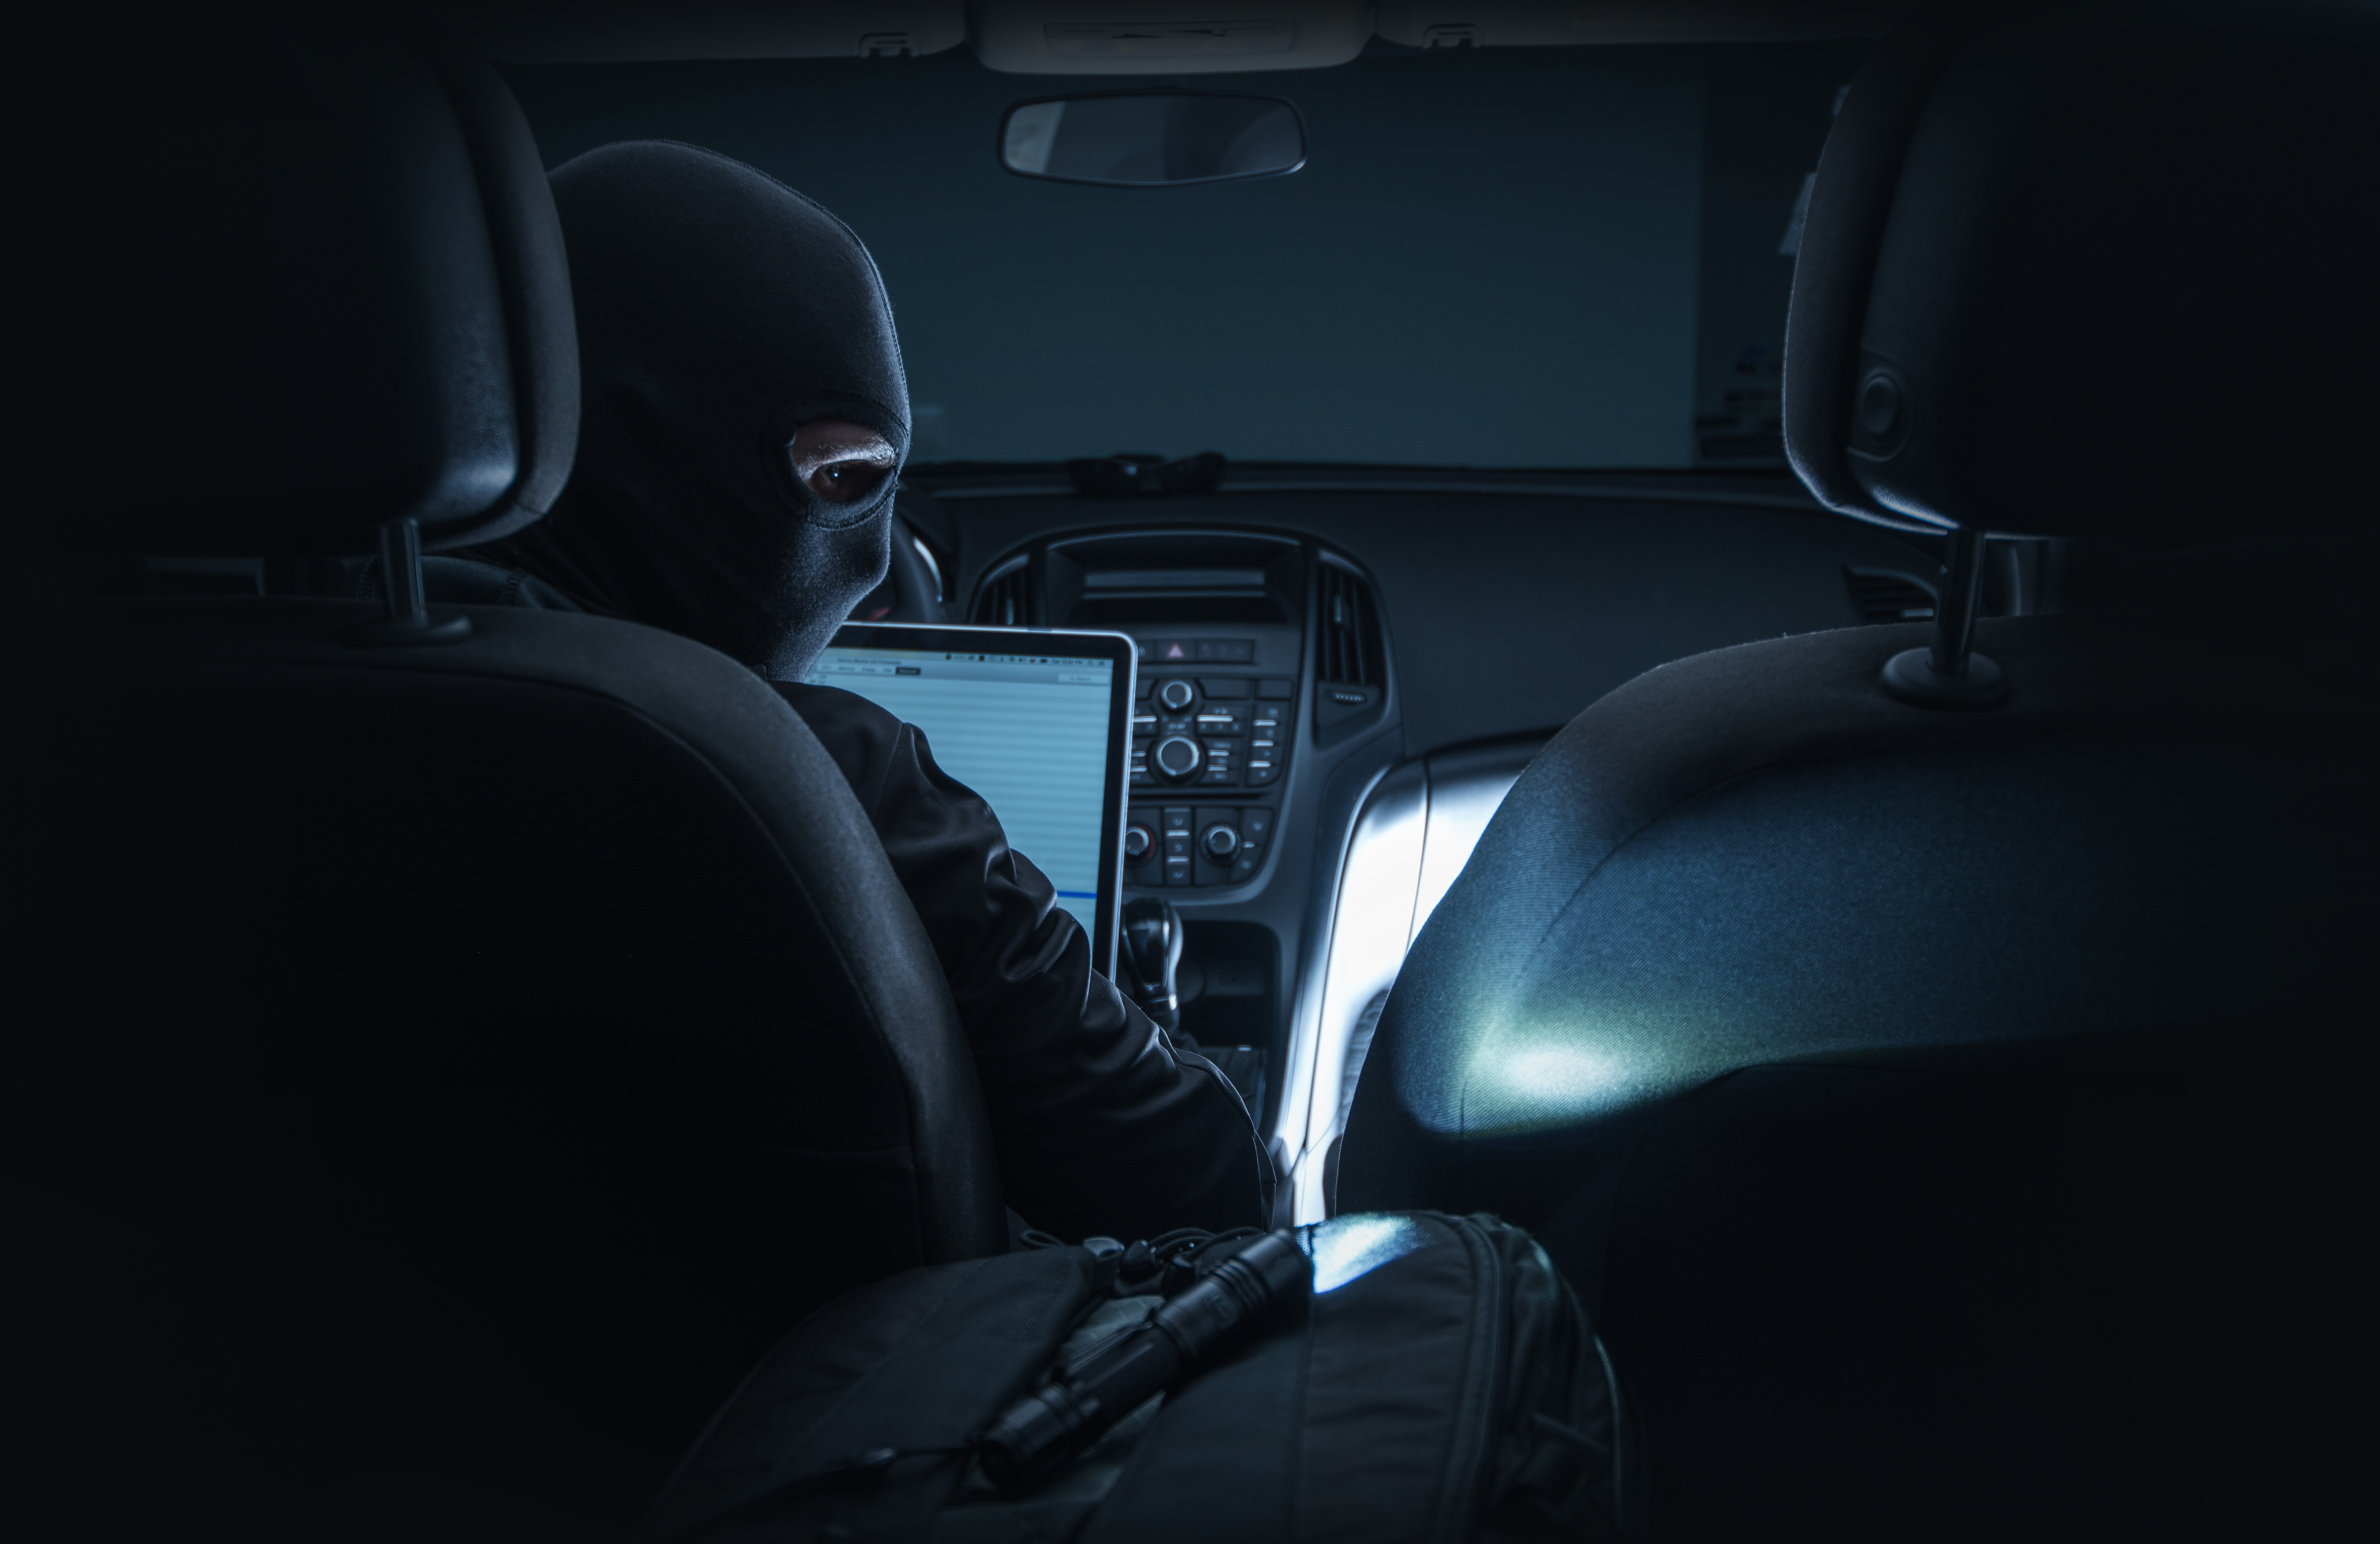 Everything you need to know about car hacking - Information Age